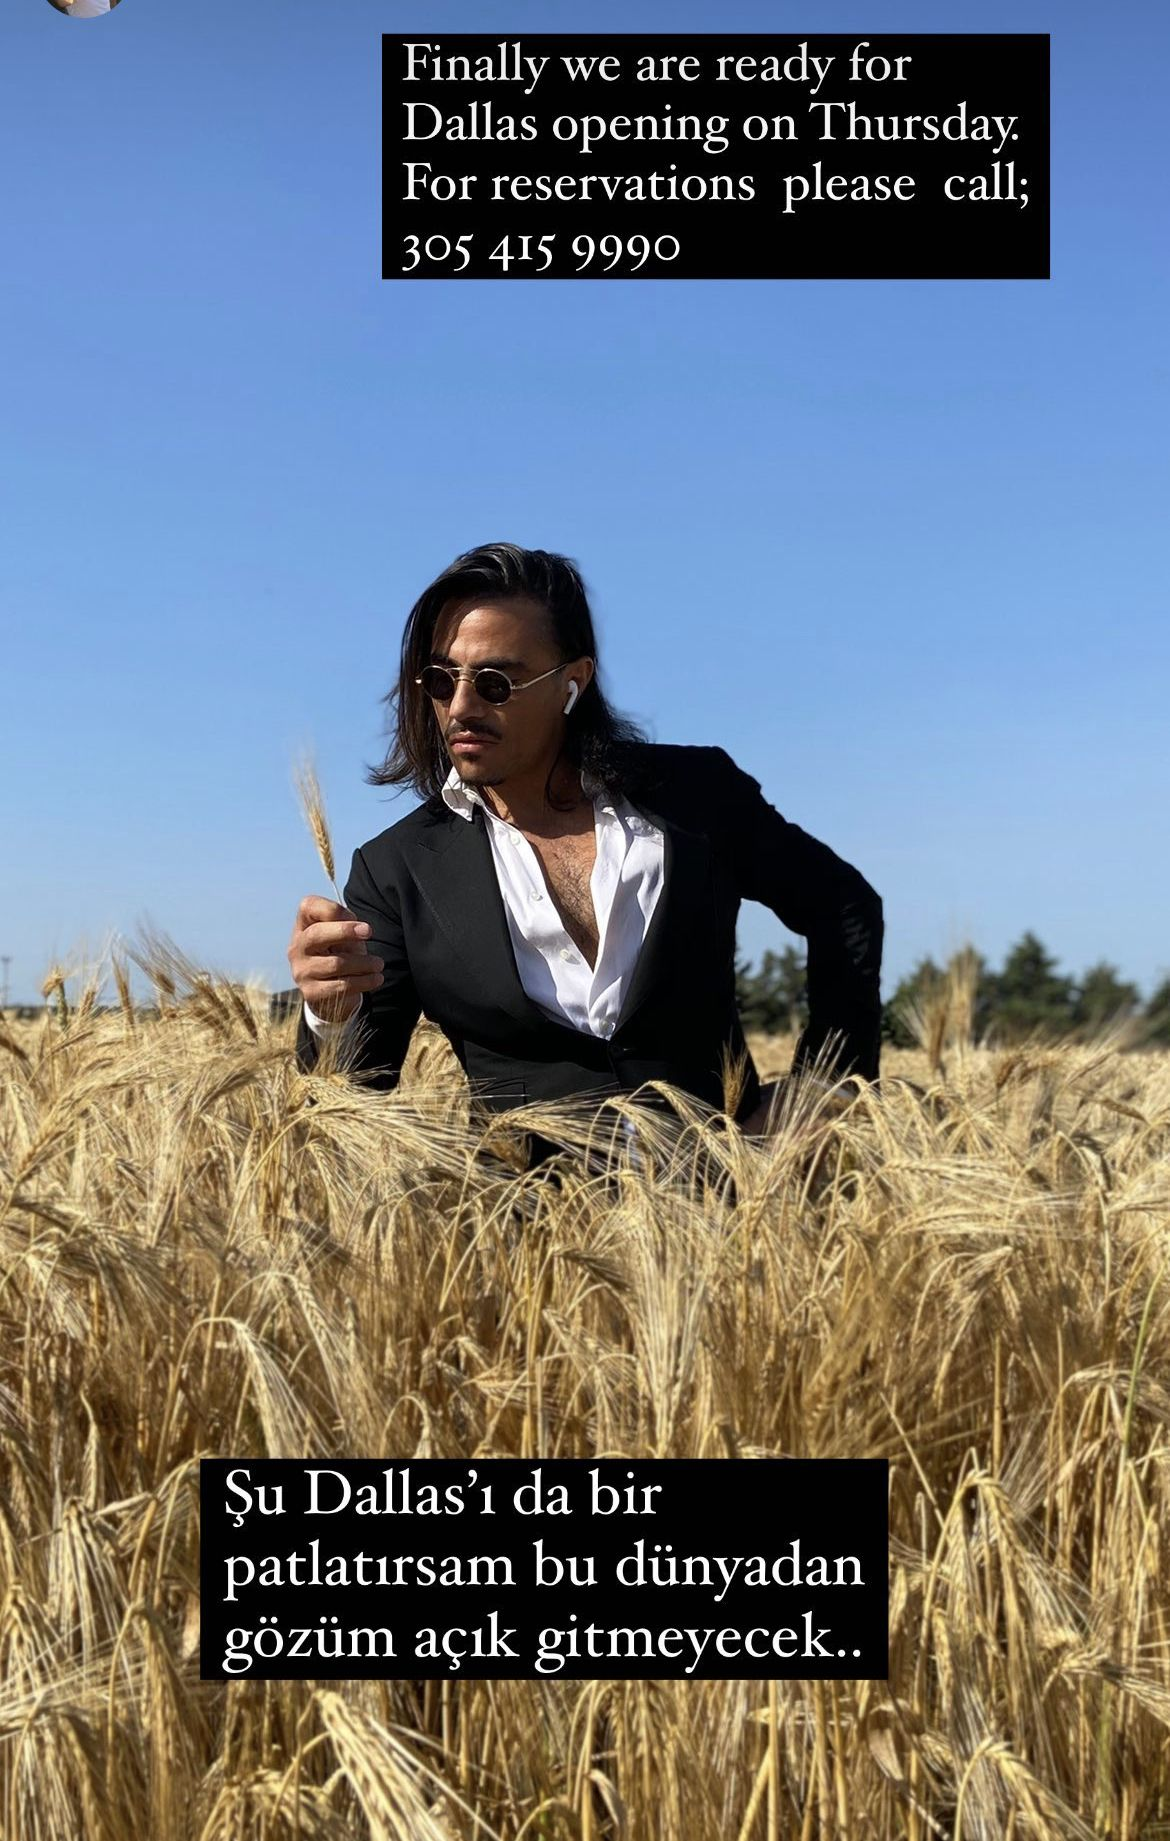 """Nusret """"Salt Bae"""" Gokce standing in a wheat field. The English texts reads """"Finally, we are ready for Dallas opening on Thursday. For reservation, please call 305.415.9990."""